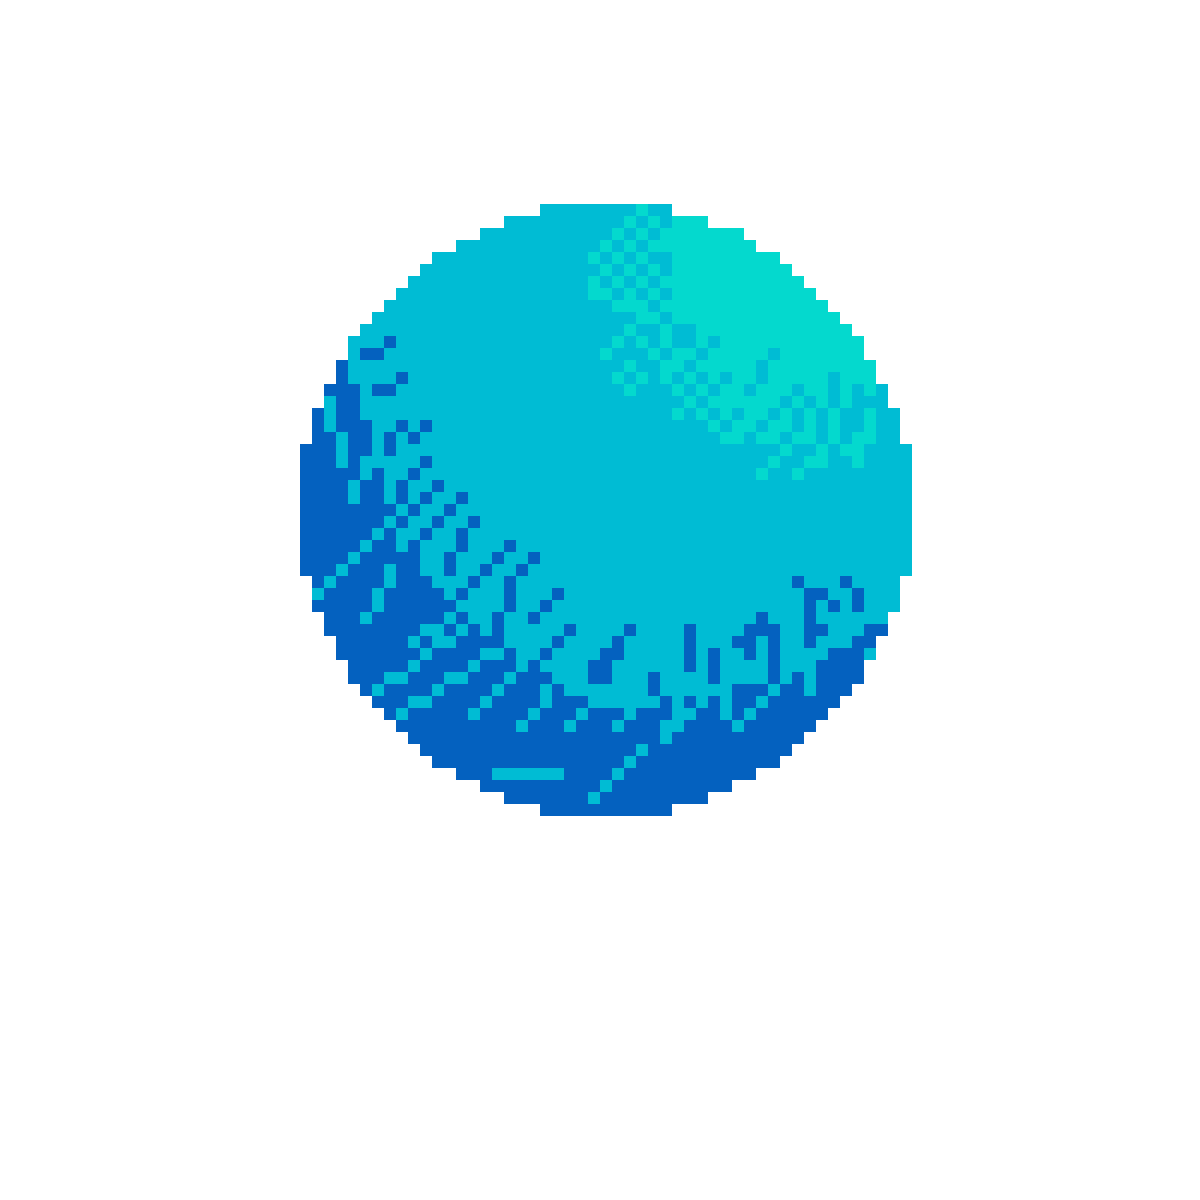 Drawing sphere shading. Pixilart bad by anonymous